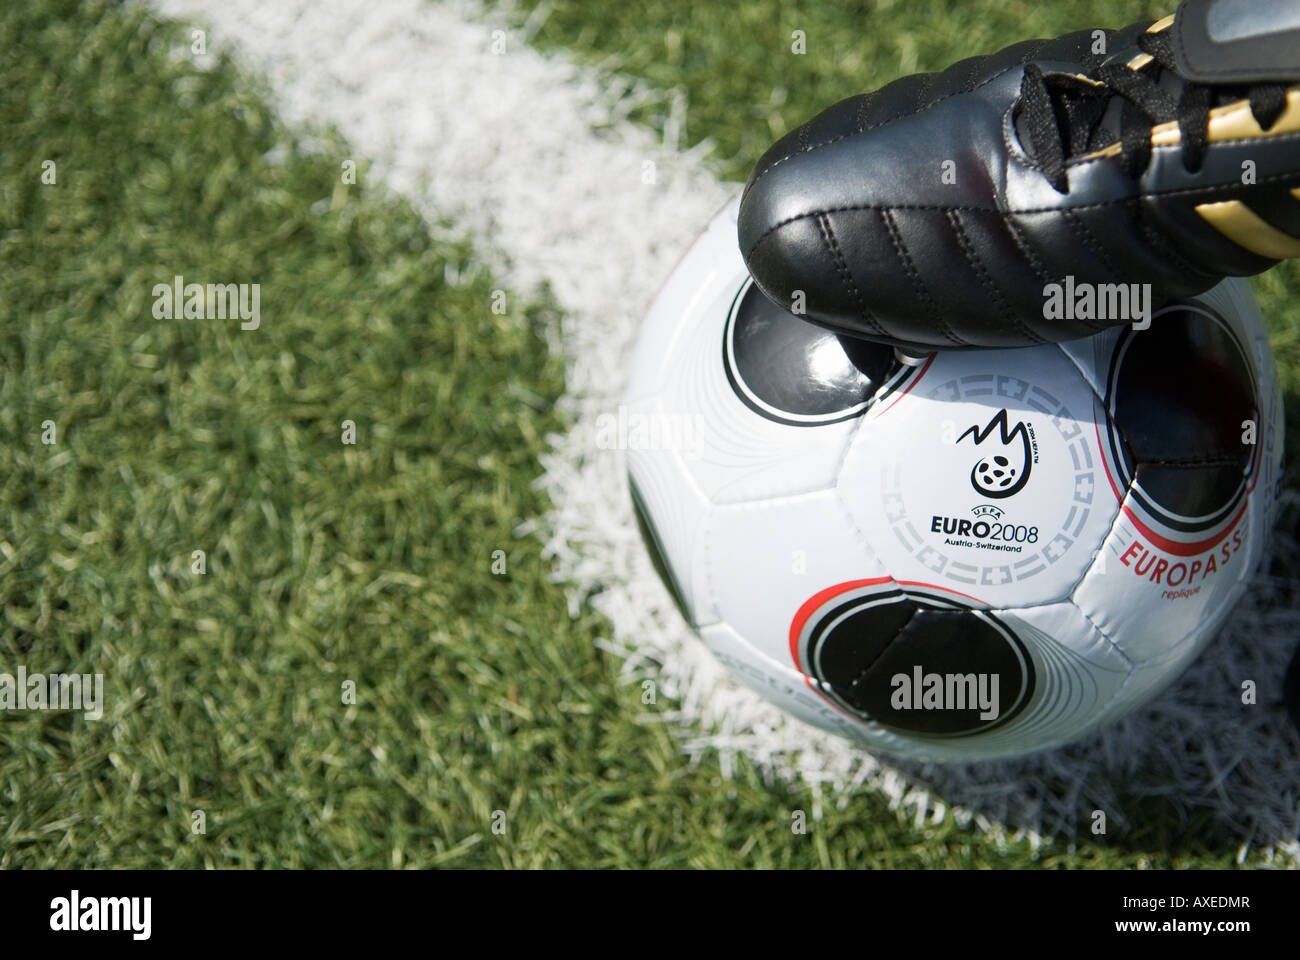 the foot of a football player on a Replica of EUROPASS the official matchball of the European football Tournament - Stock Image